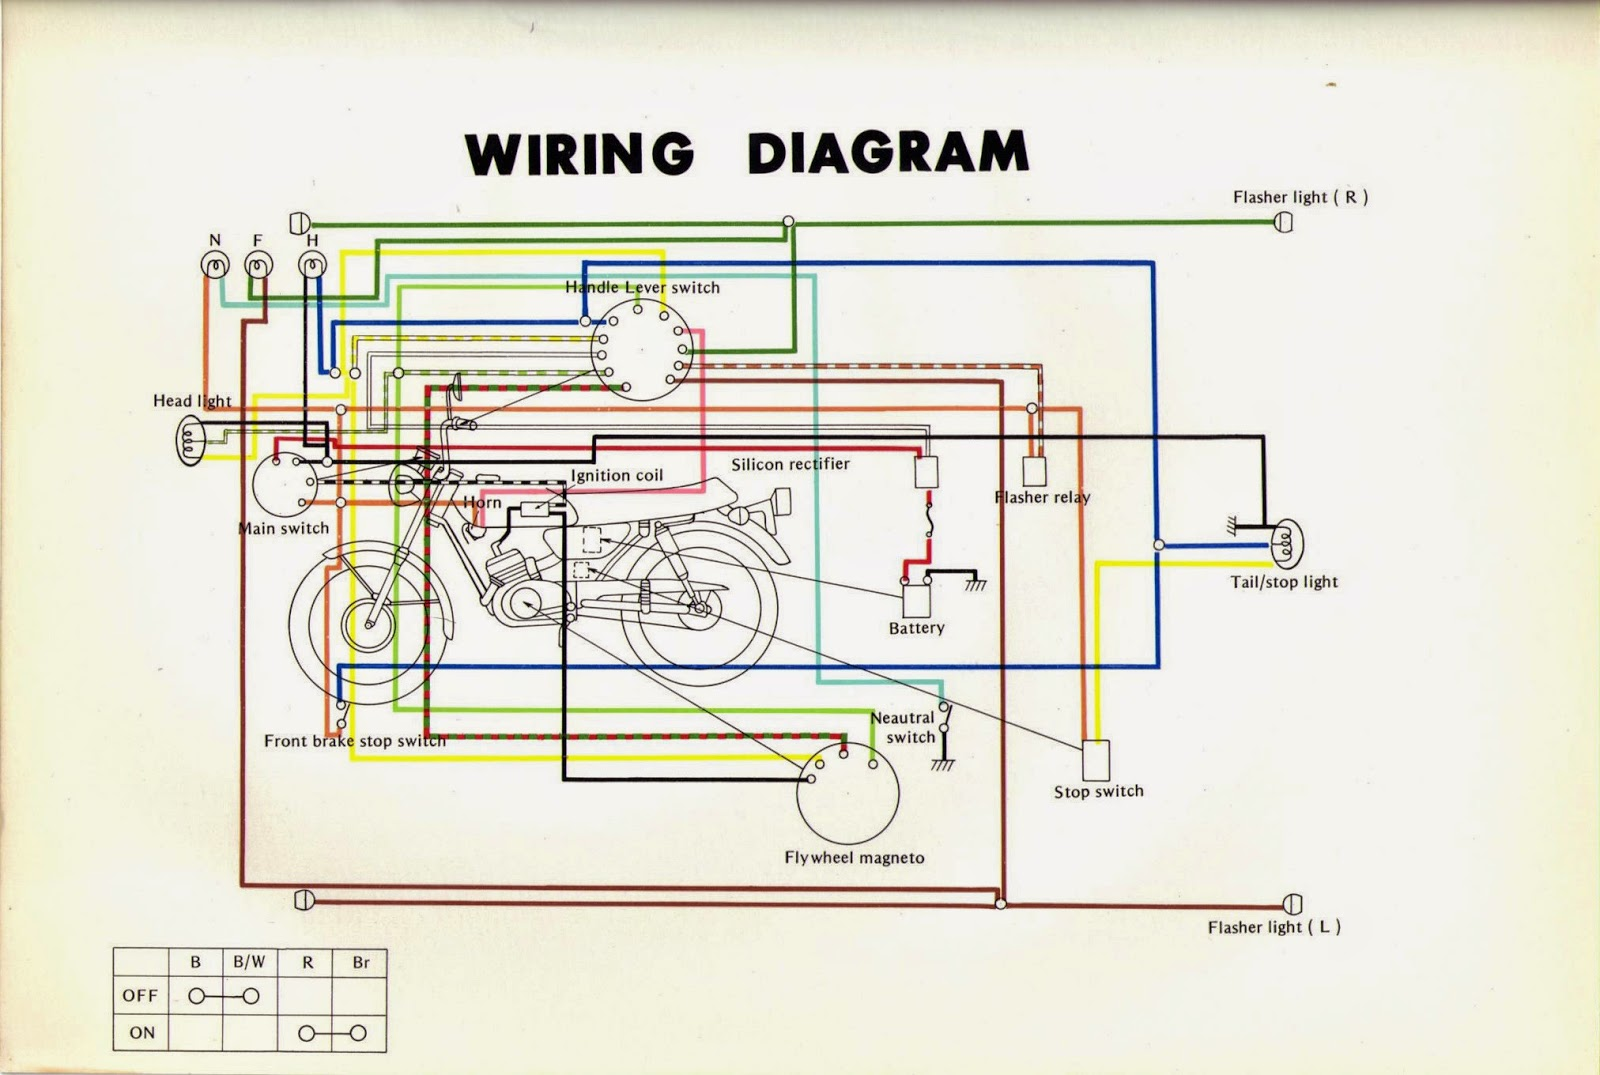 Yamaha service manual003 yamaha bolt wiring diagram ez go wiring diagram \u2022 wiring diagrams 1979 Yamaha It 400 Enduro at edmiracle.co